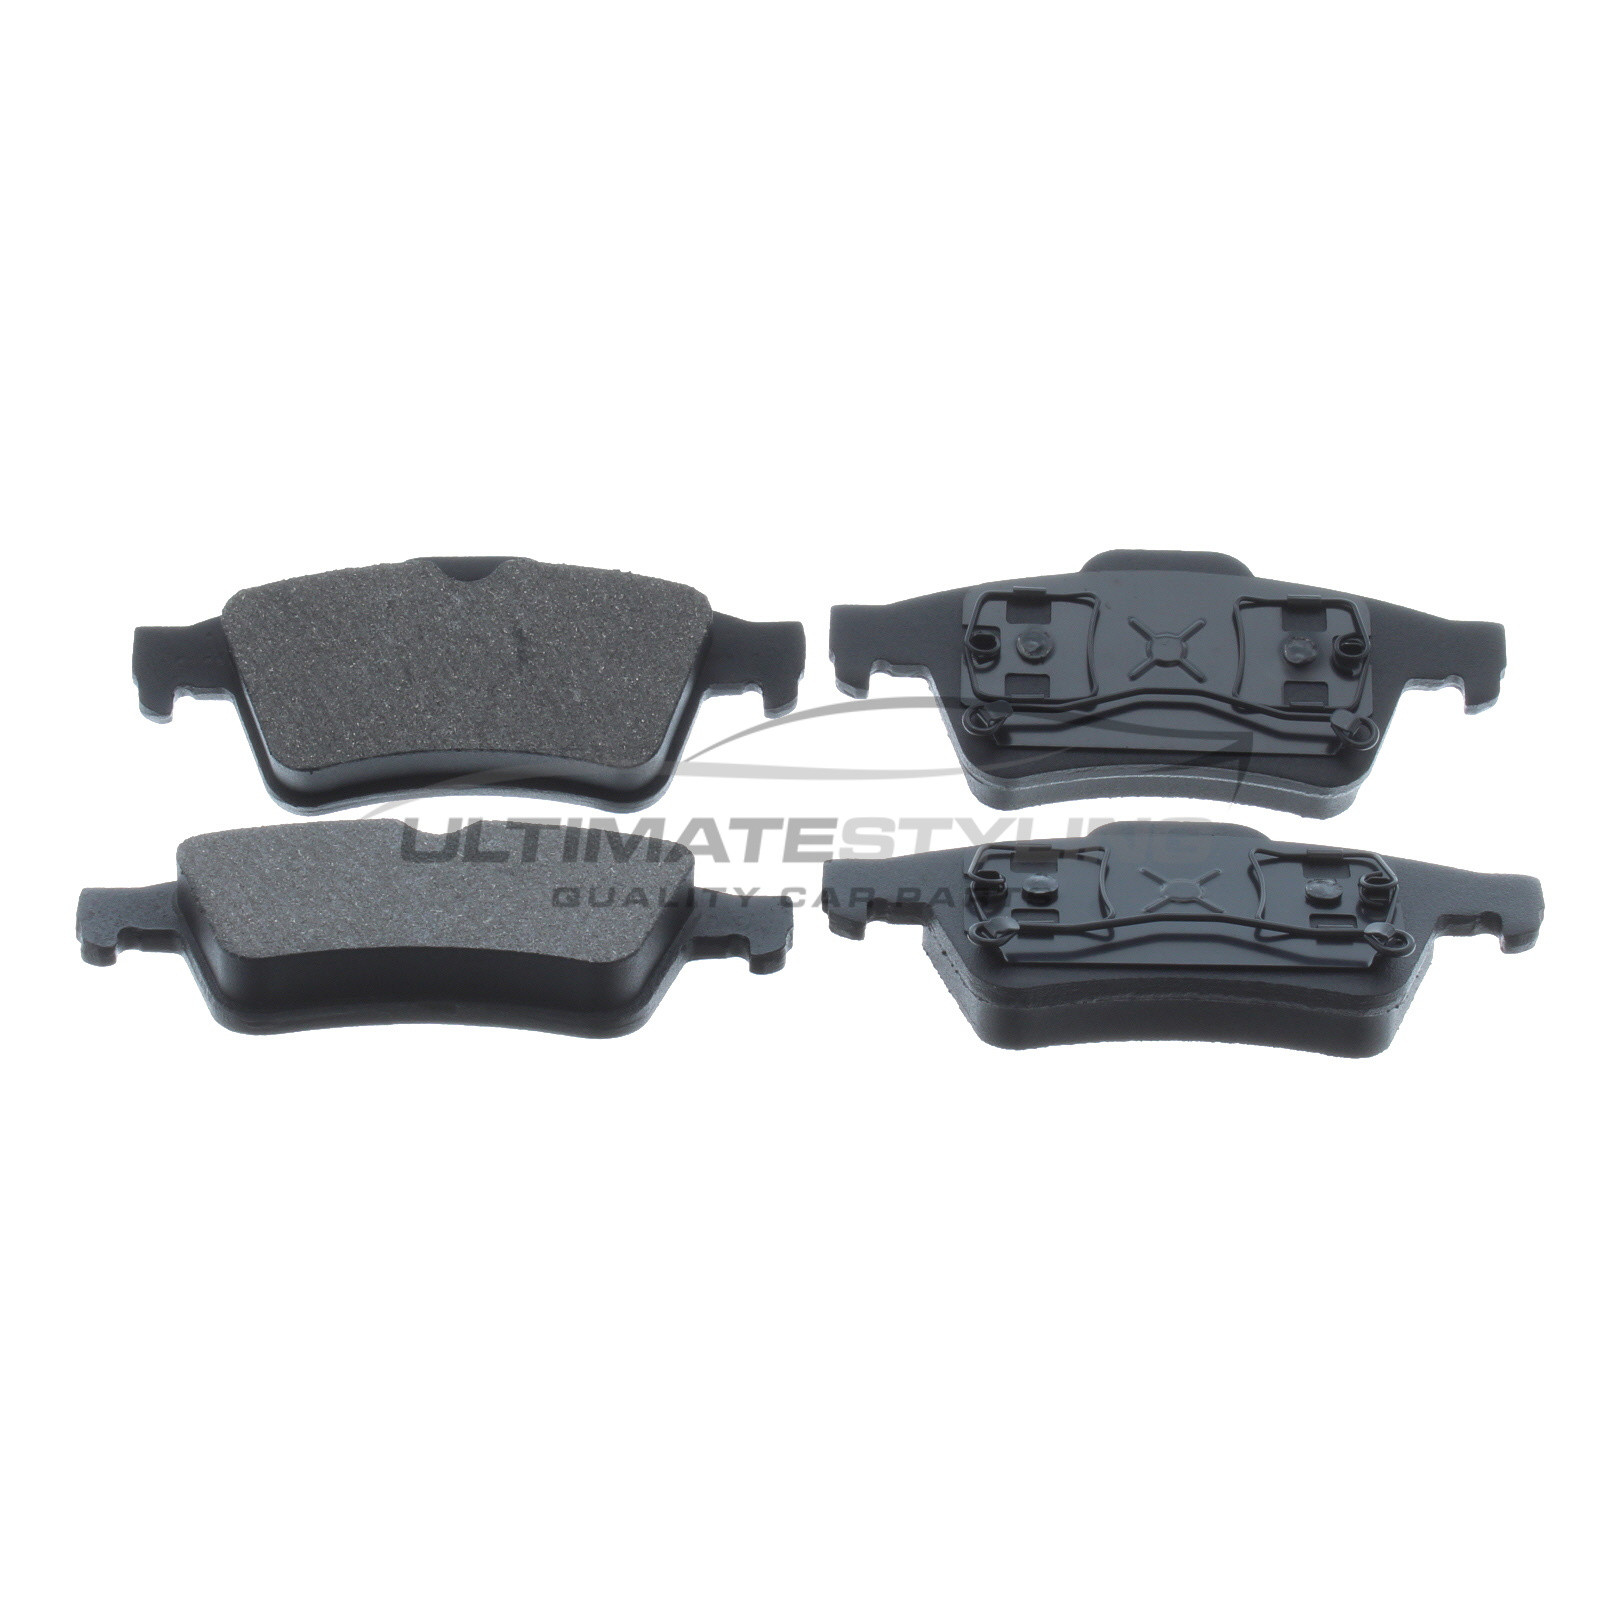 Brake Pads for Renault Laguna